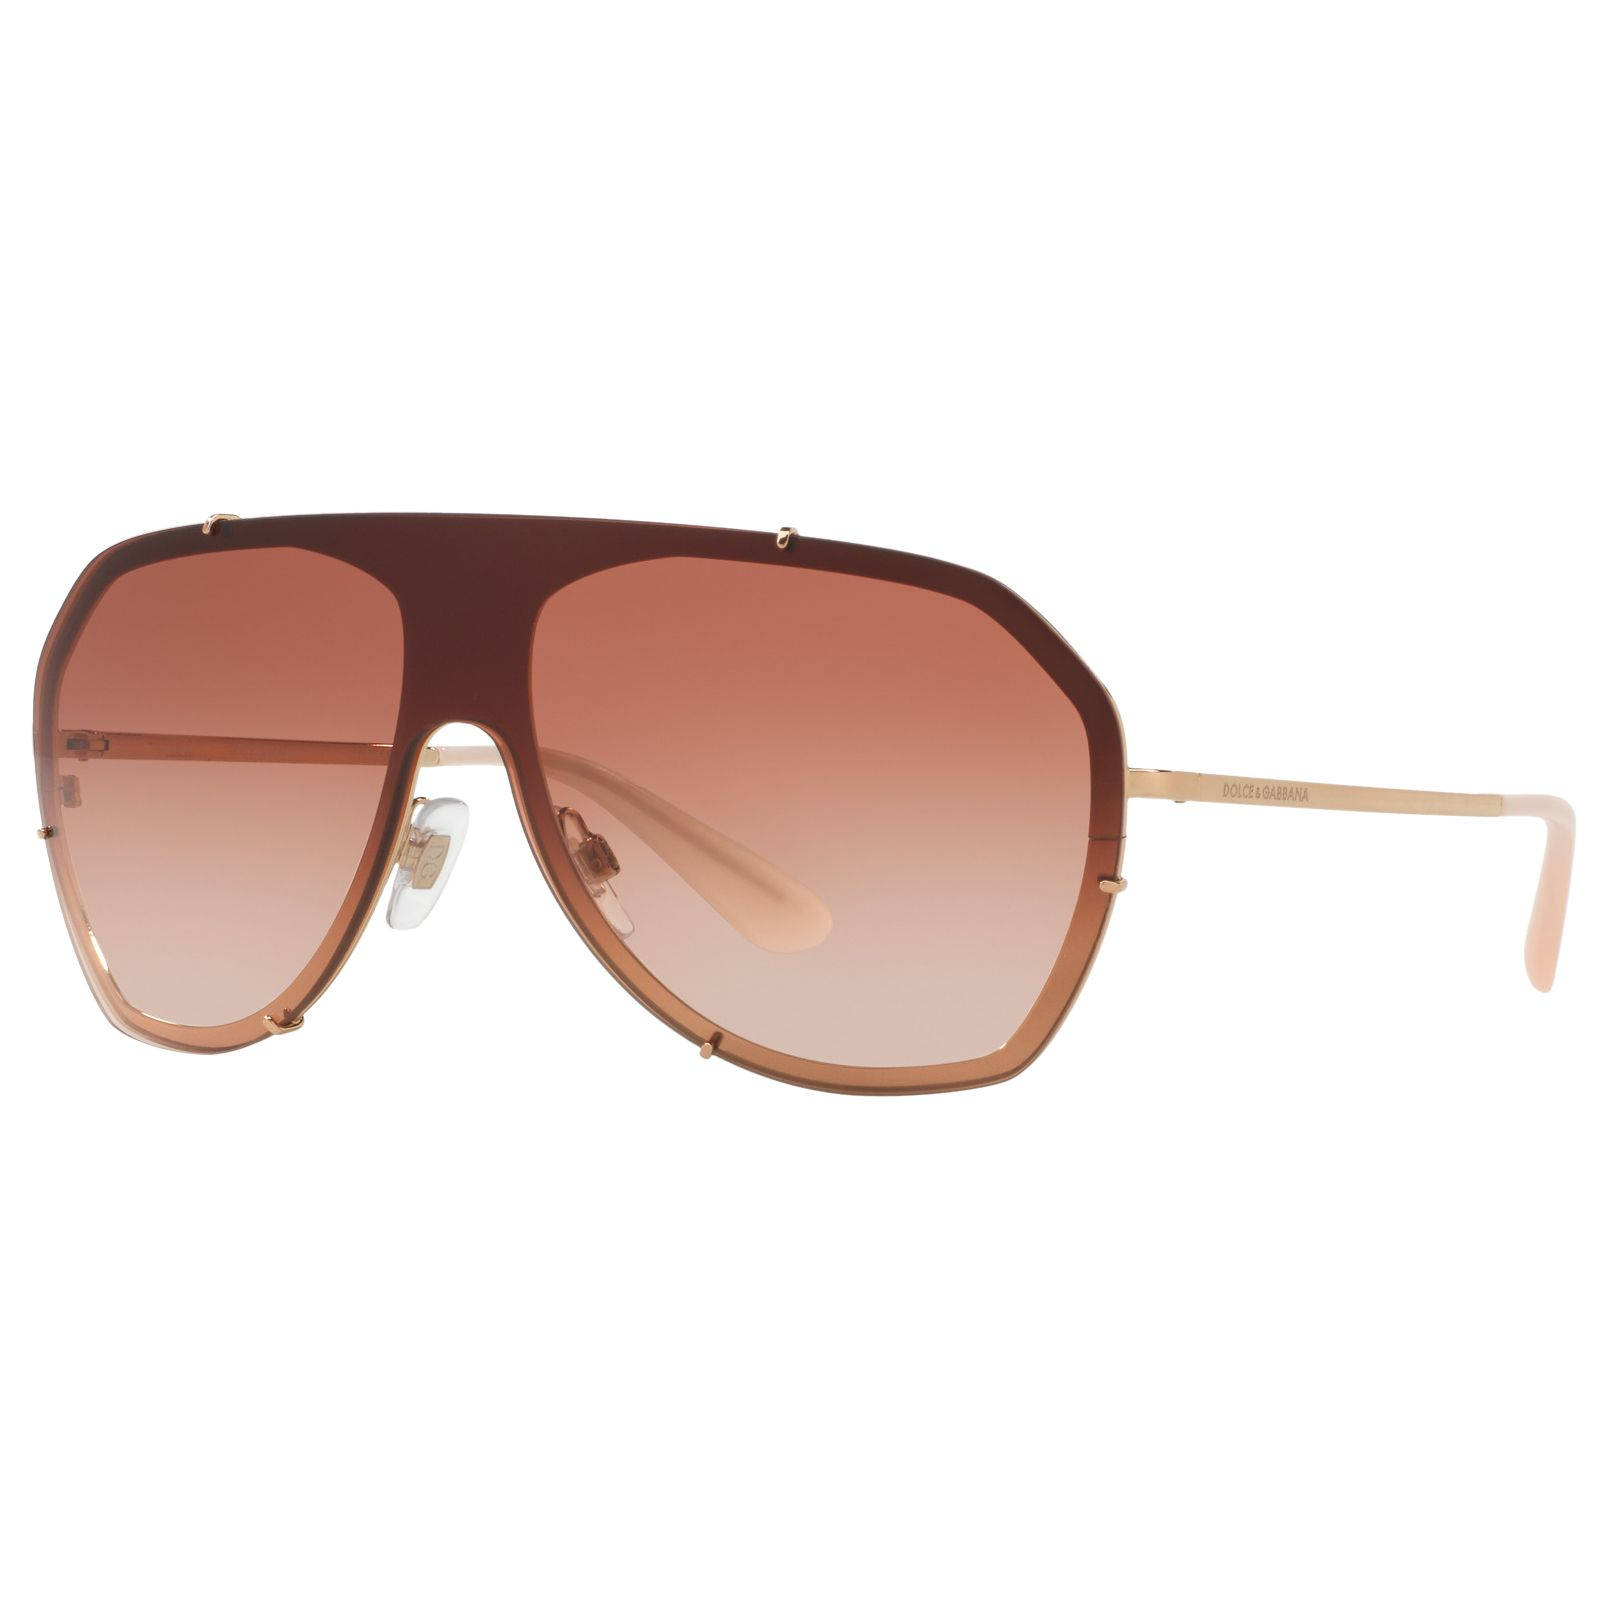 Dolce & Gabbana Dolce & Gabbana DG2162 Aviator Sunglasses, Brown/Rose Gradient